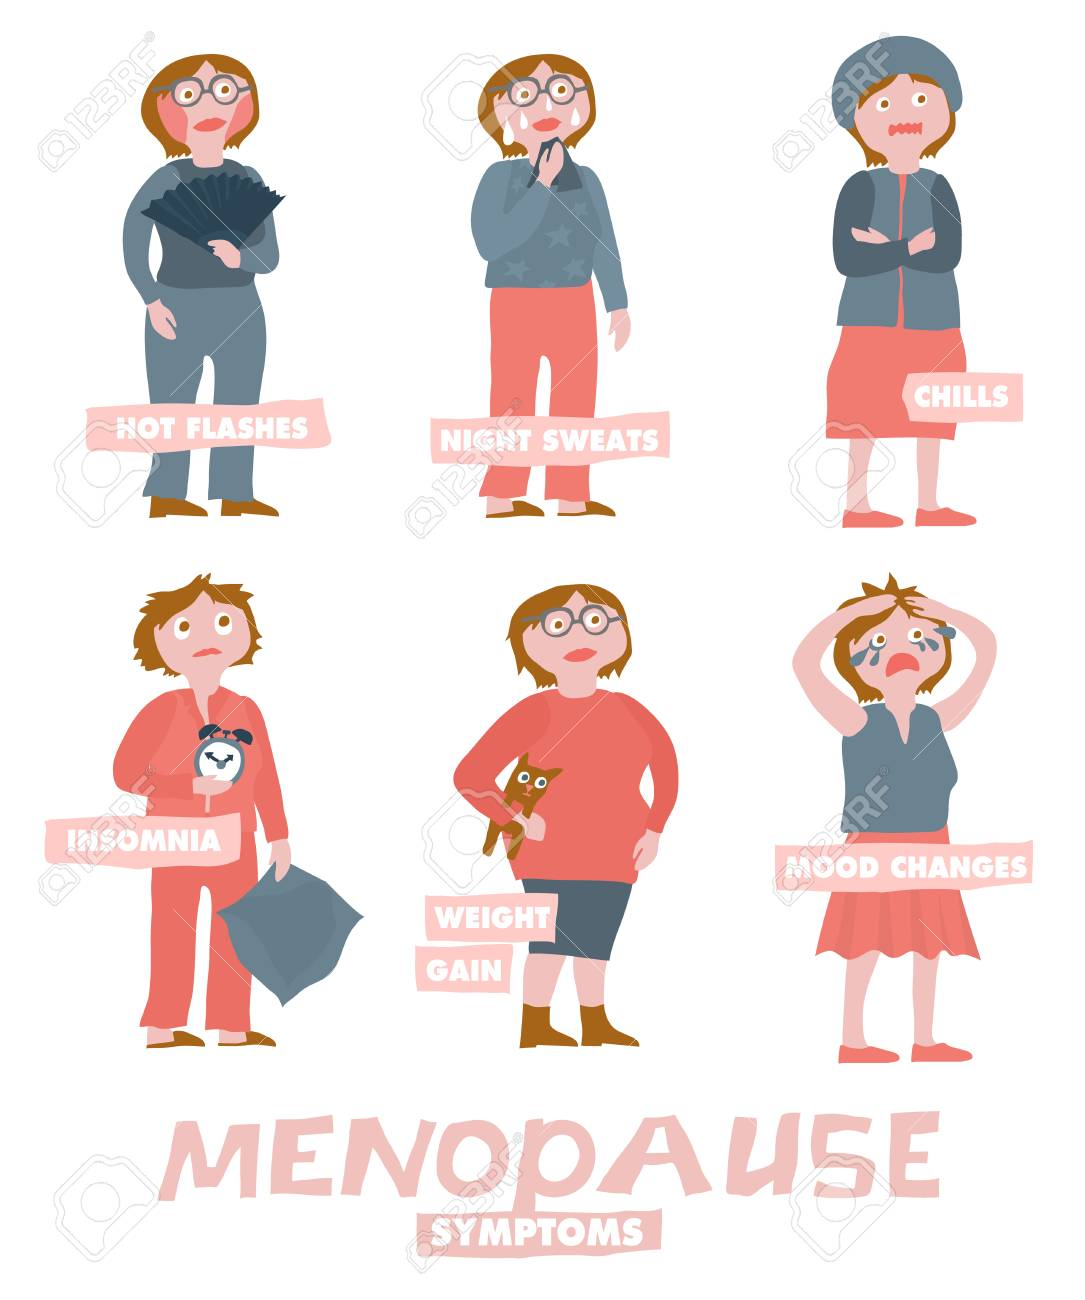 Menopause Symptoms And Physical Changes Vector Illustration